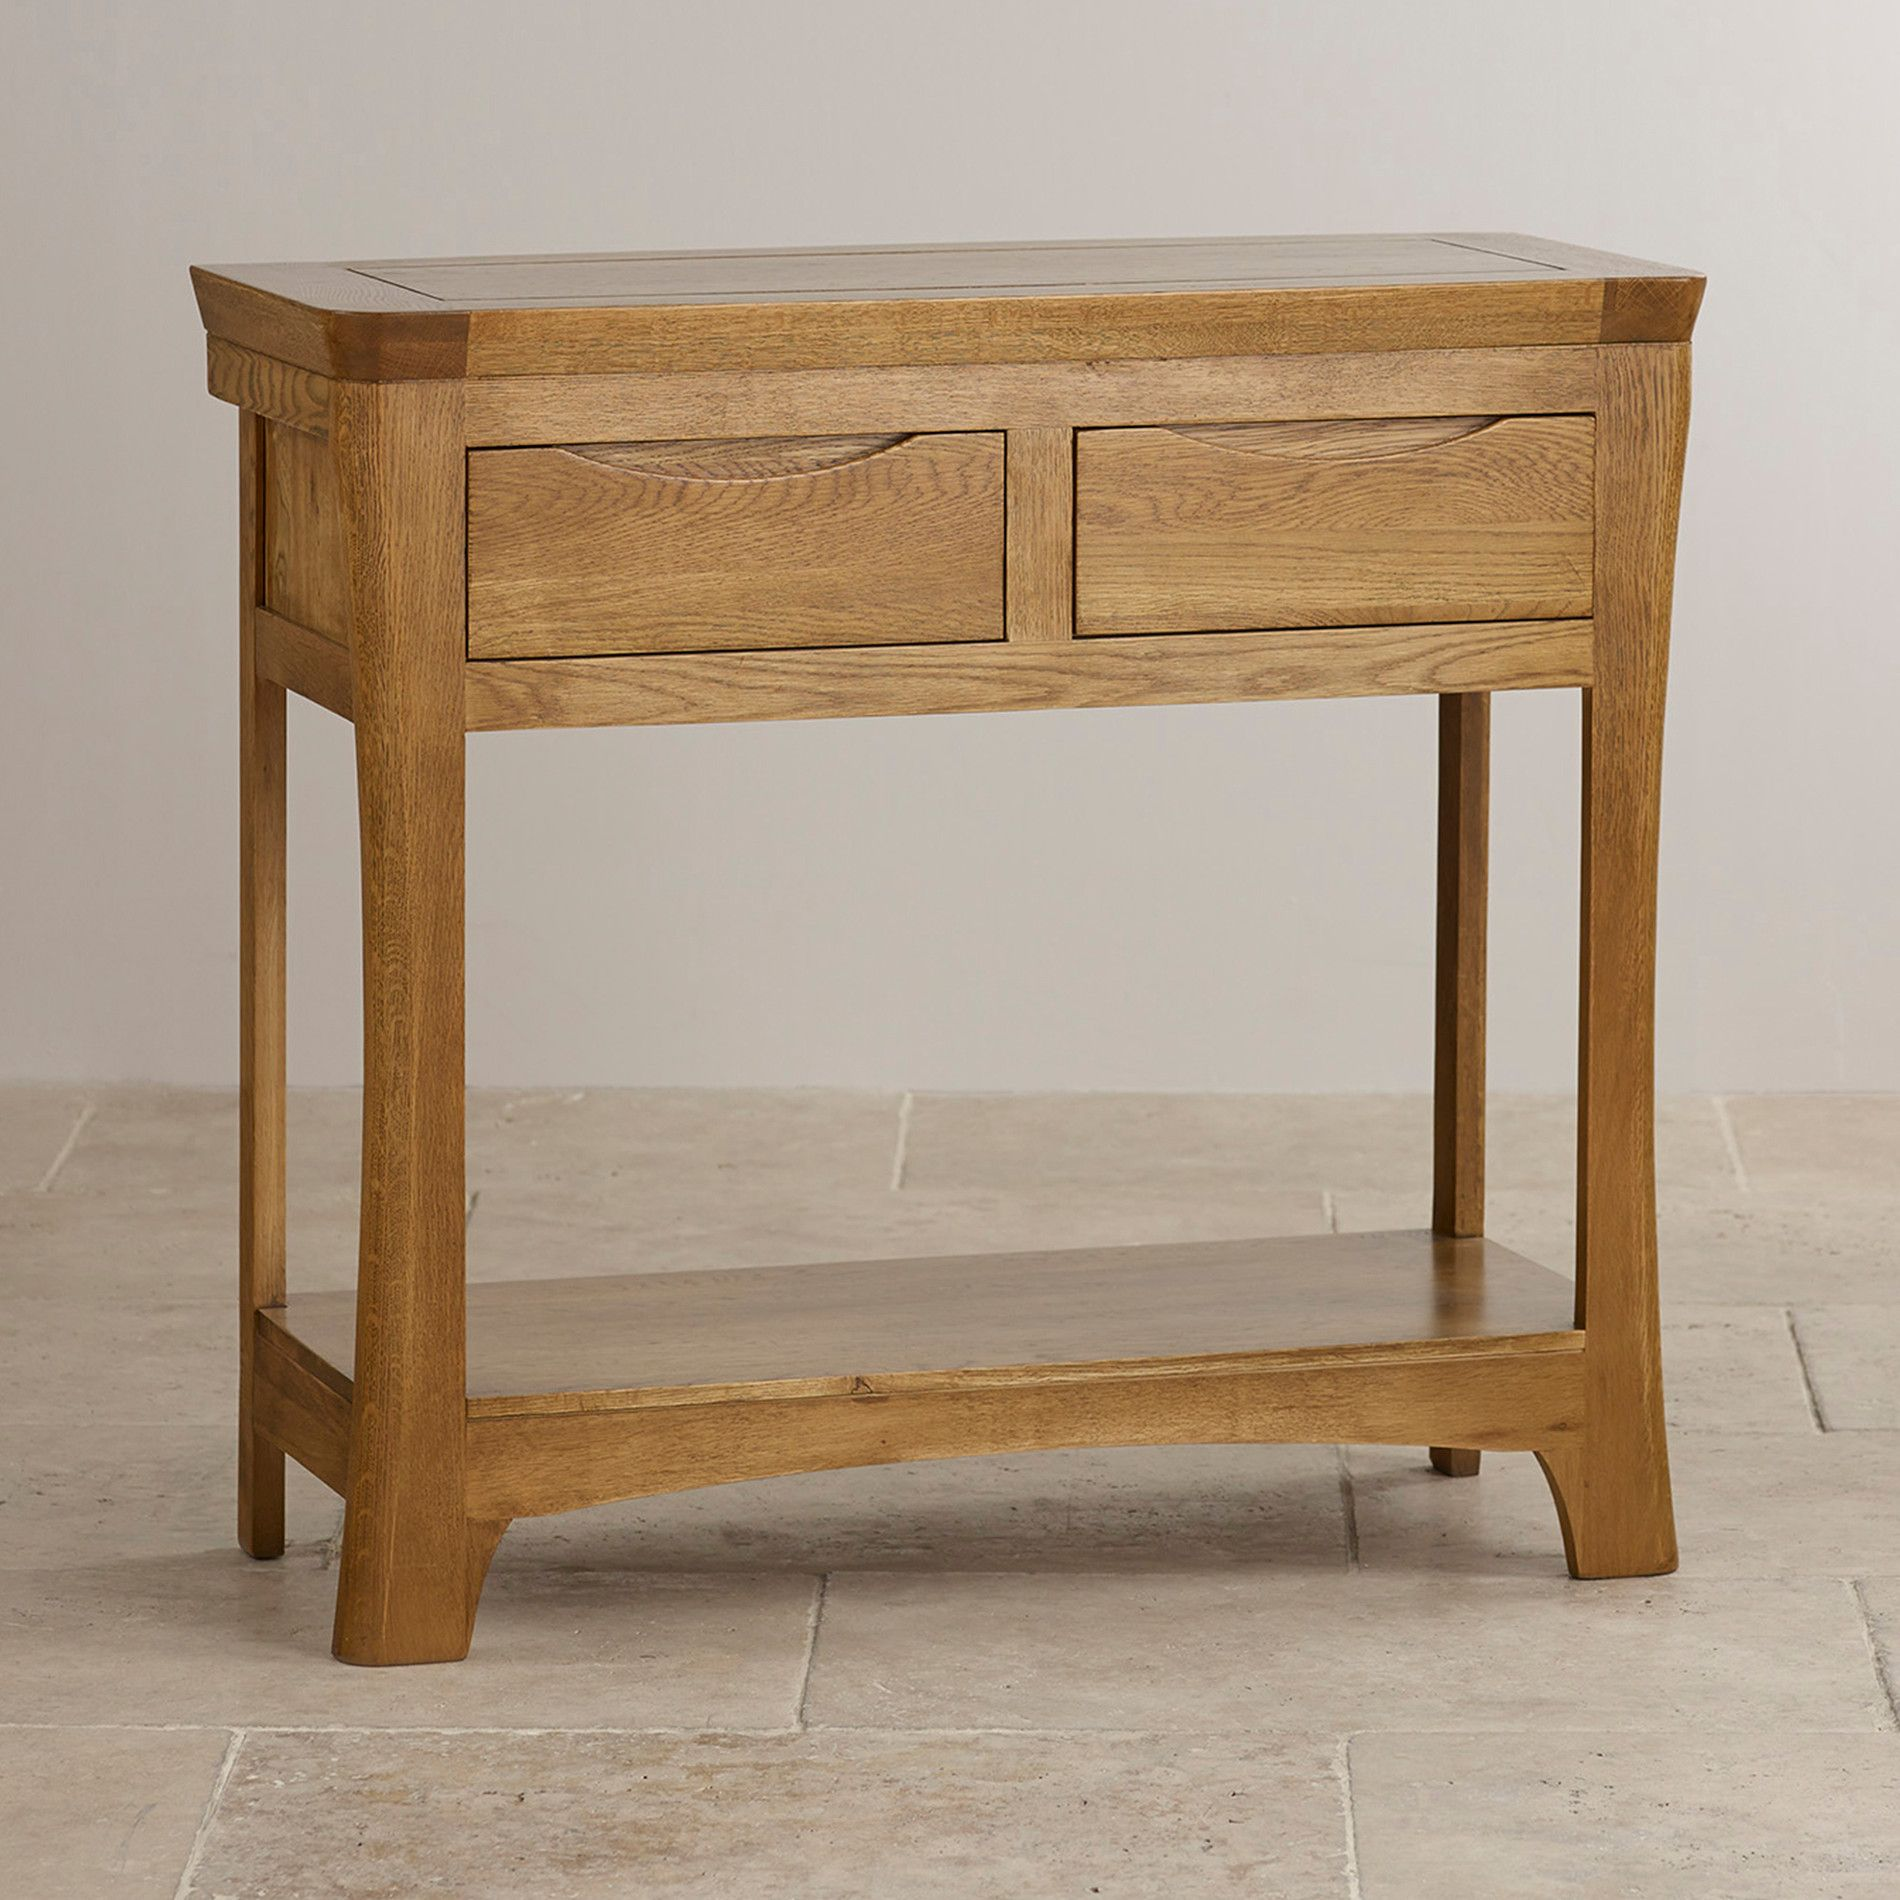 Oak Furniture Land, Hardwood Furniture, Bedroom Furniture, Oak Land, Rustic Console  Tables